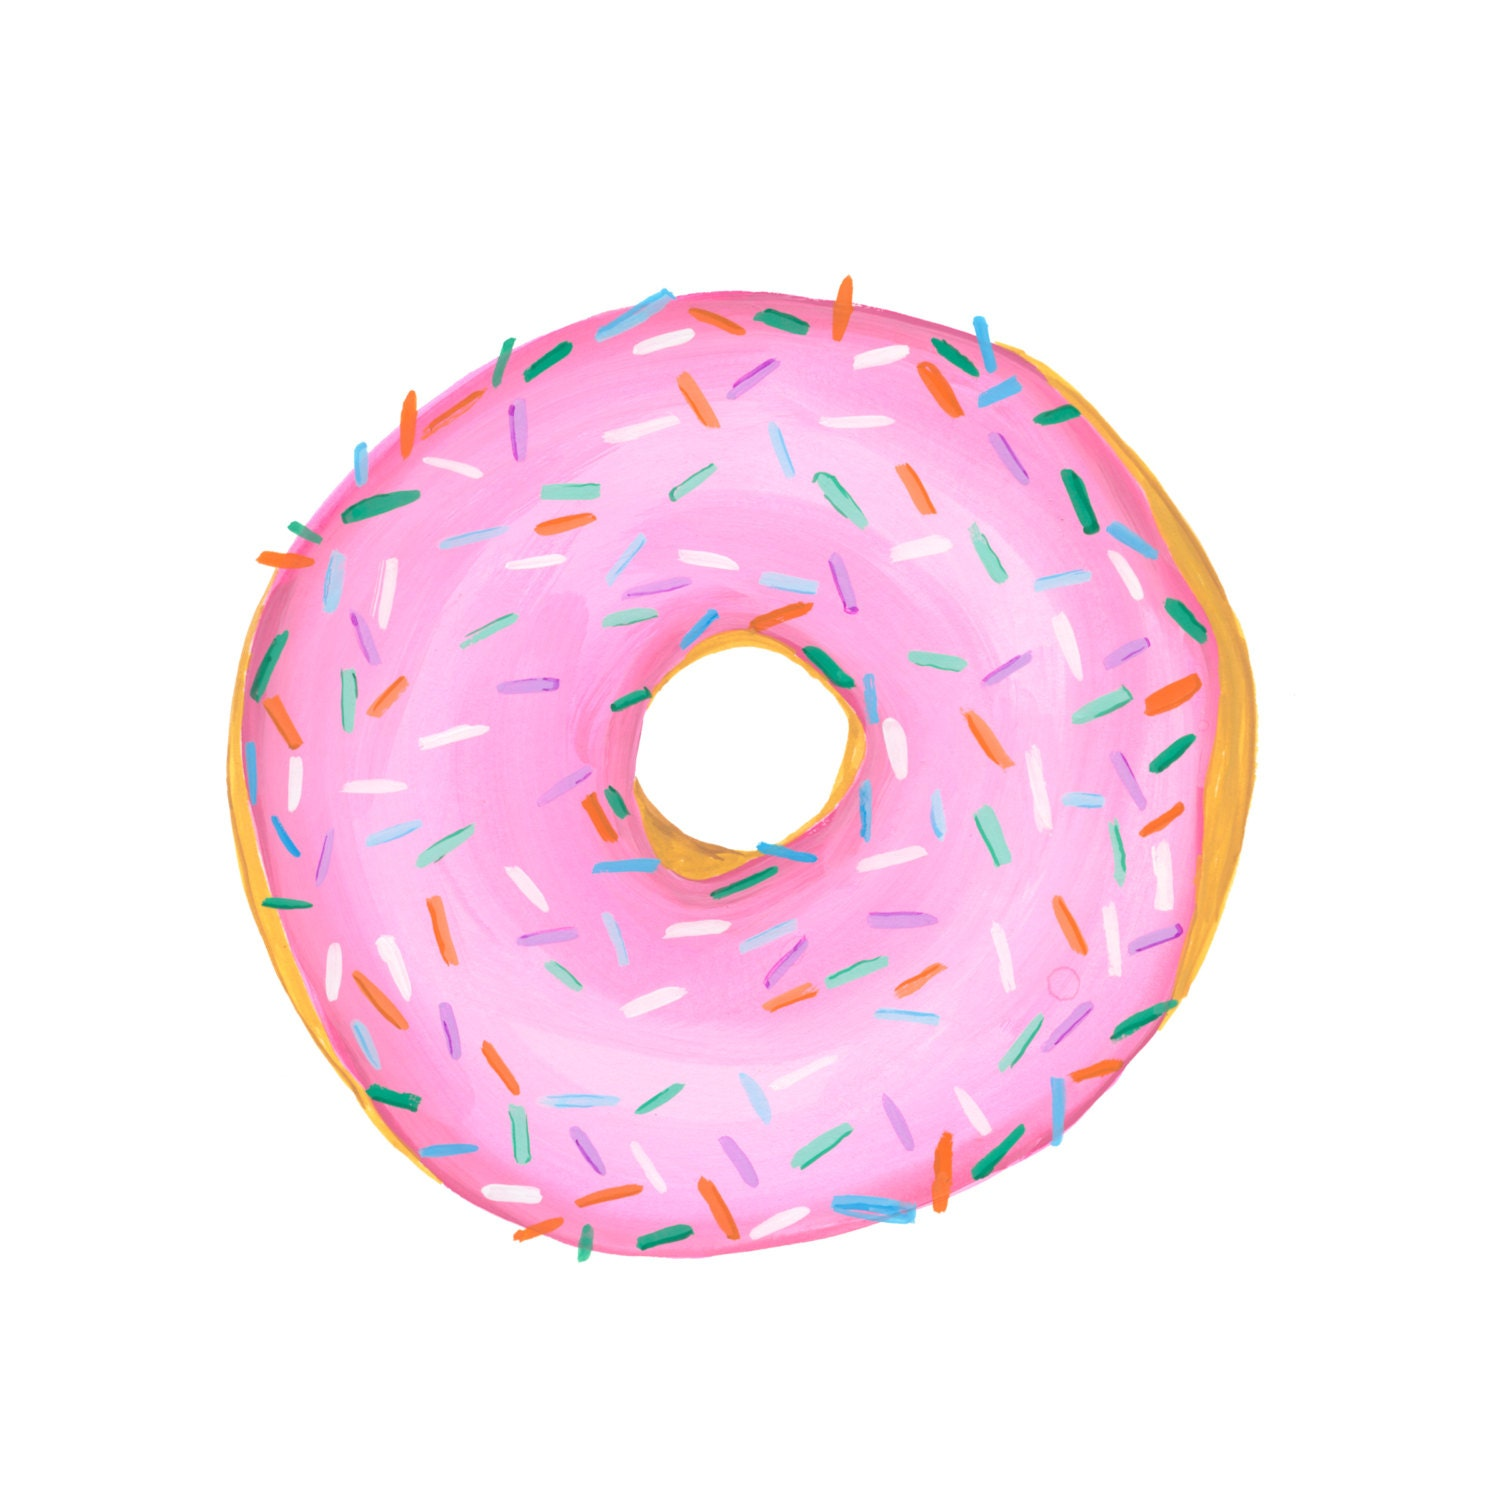 A Classic Pink Glazed With Sprinkles Donut Watercolor